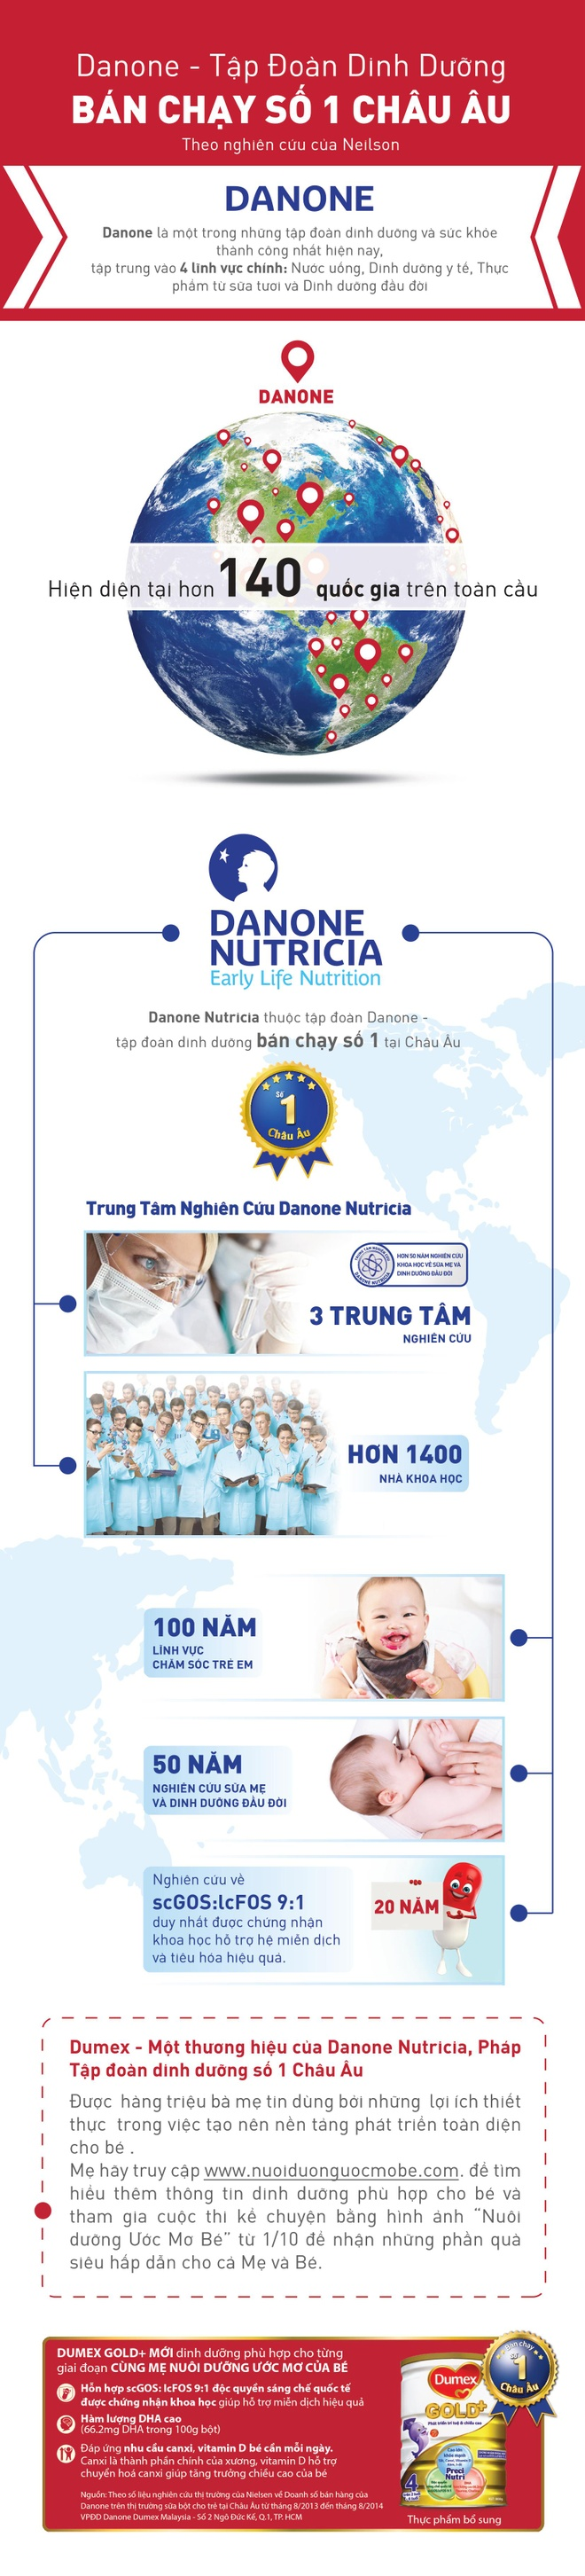 Nhung con so an tuong ve tap doan dinh duong so 1 chau Au hinh anh 1